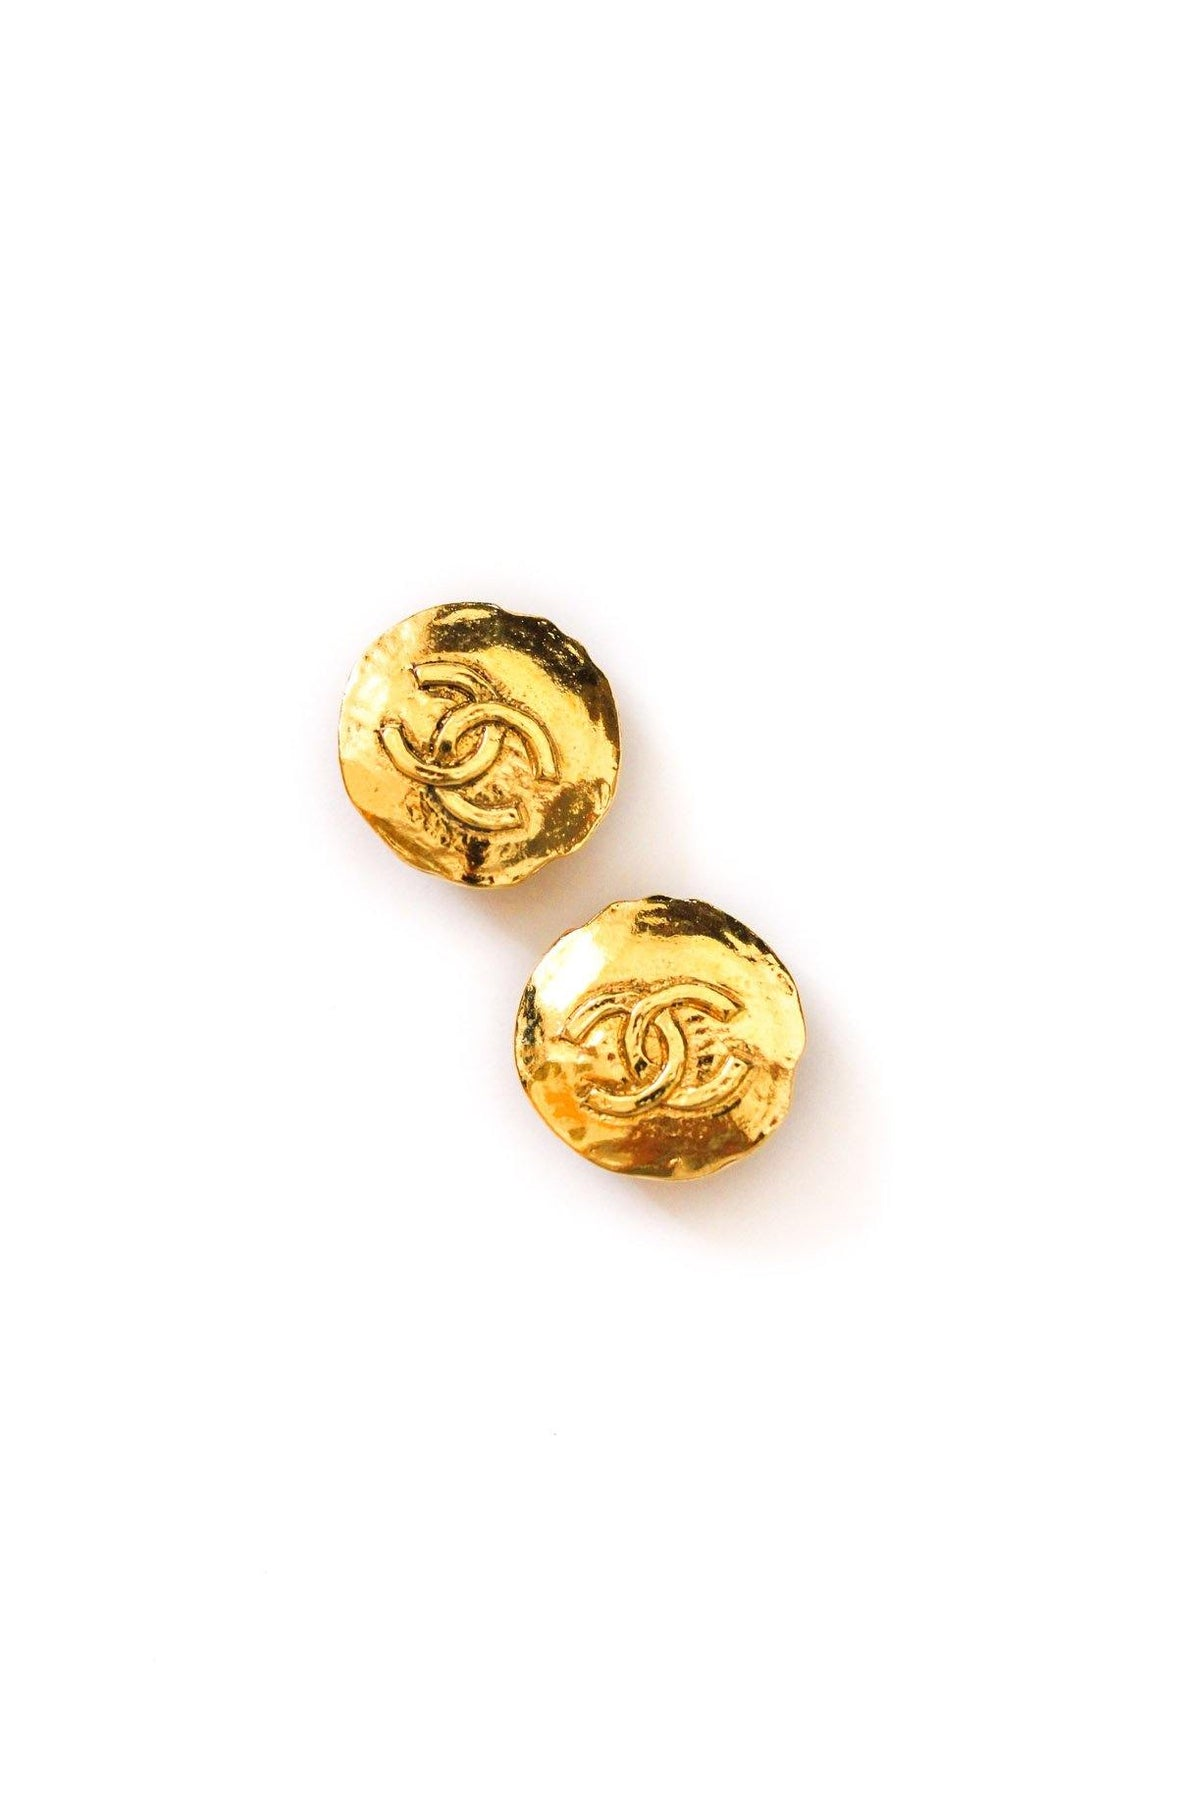 Vintage Chanel Round Coin Earrings from Sweet & Spark.